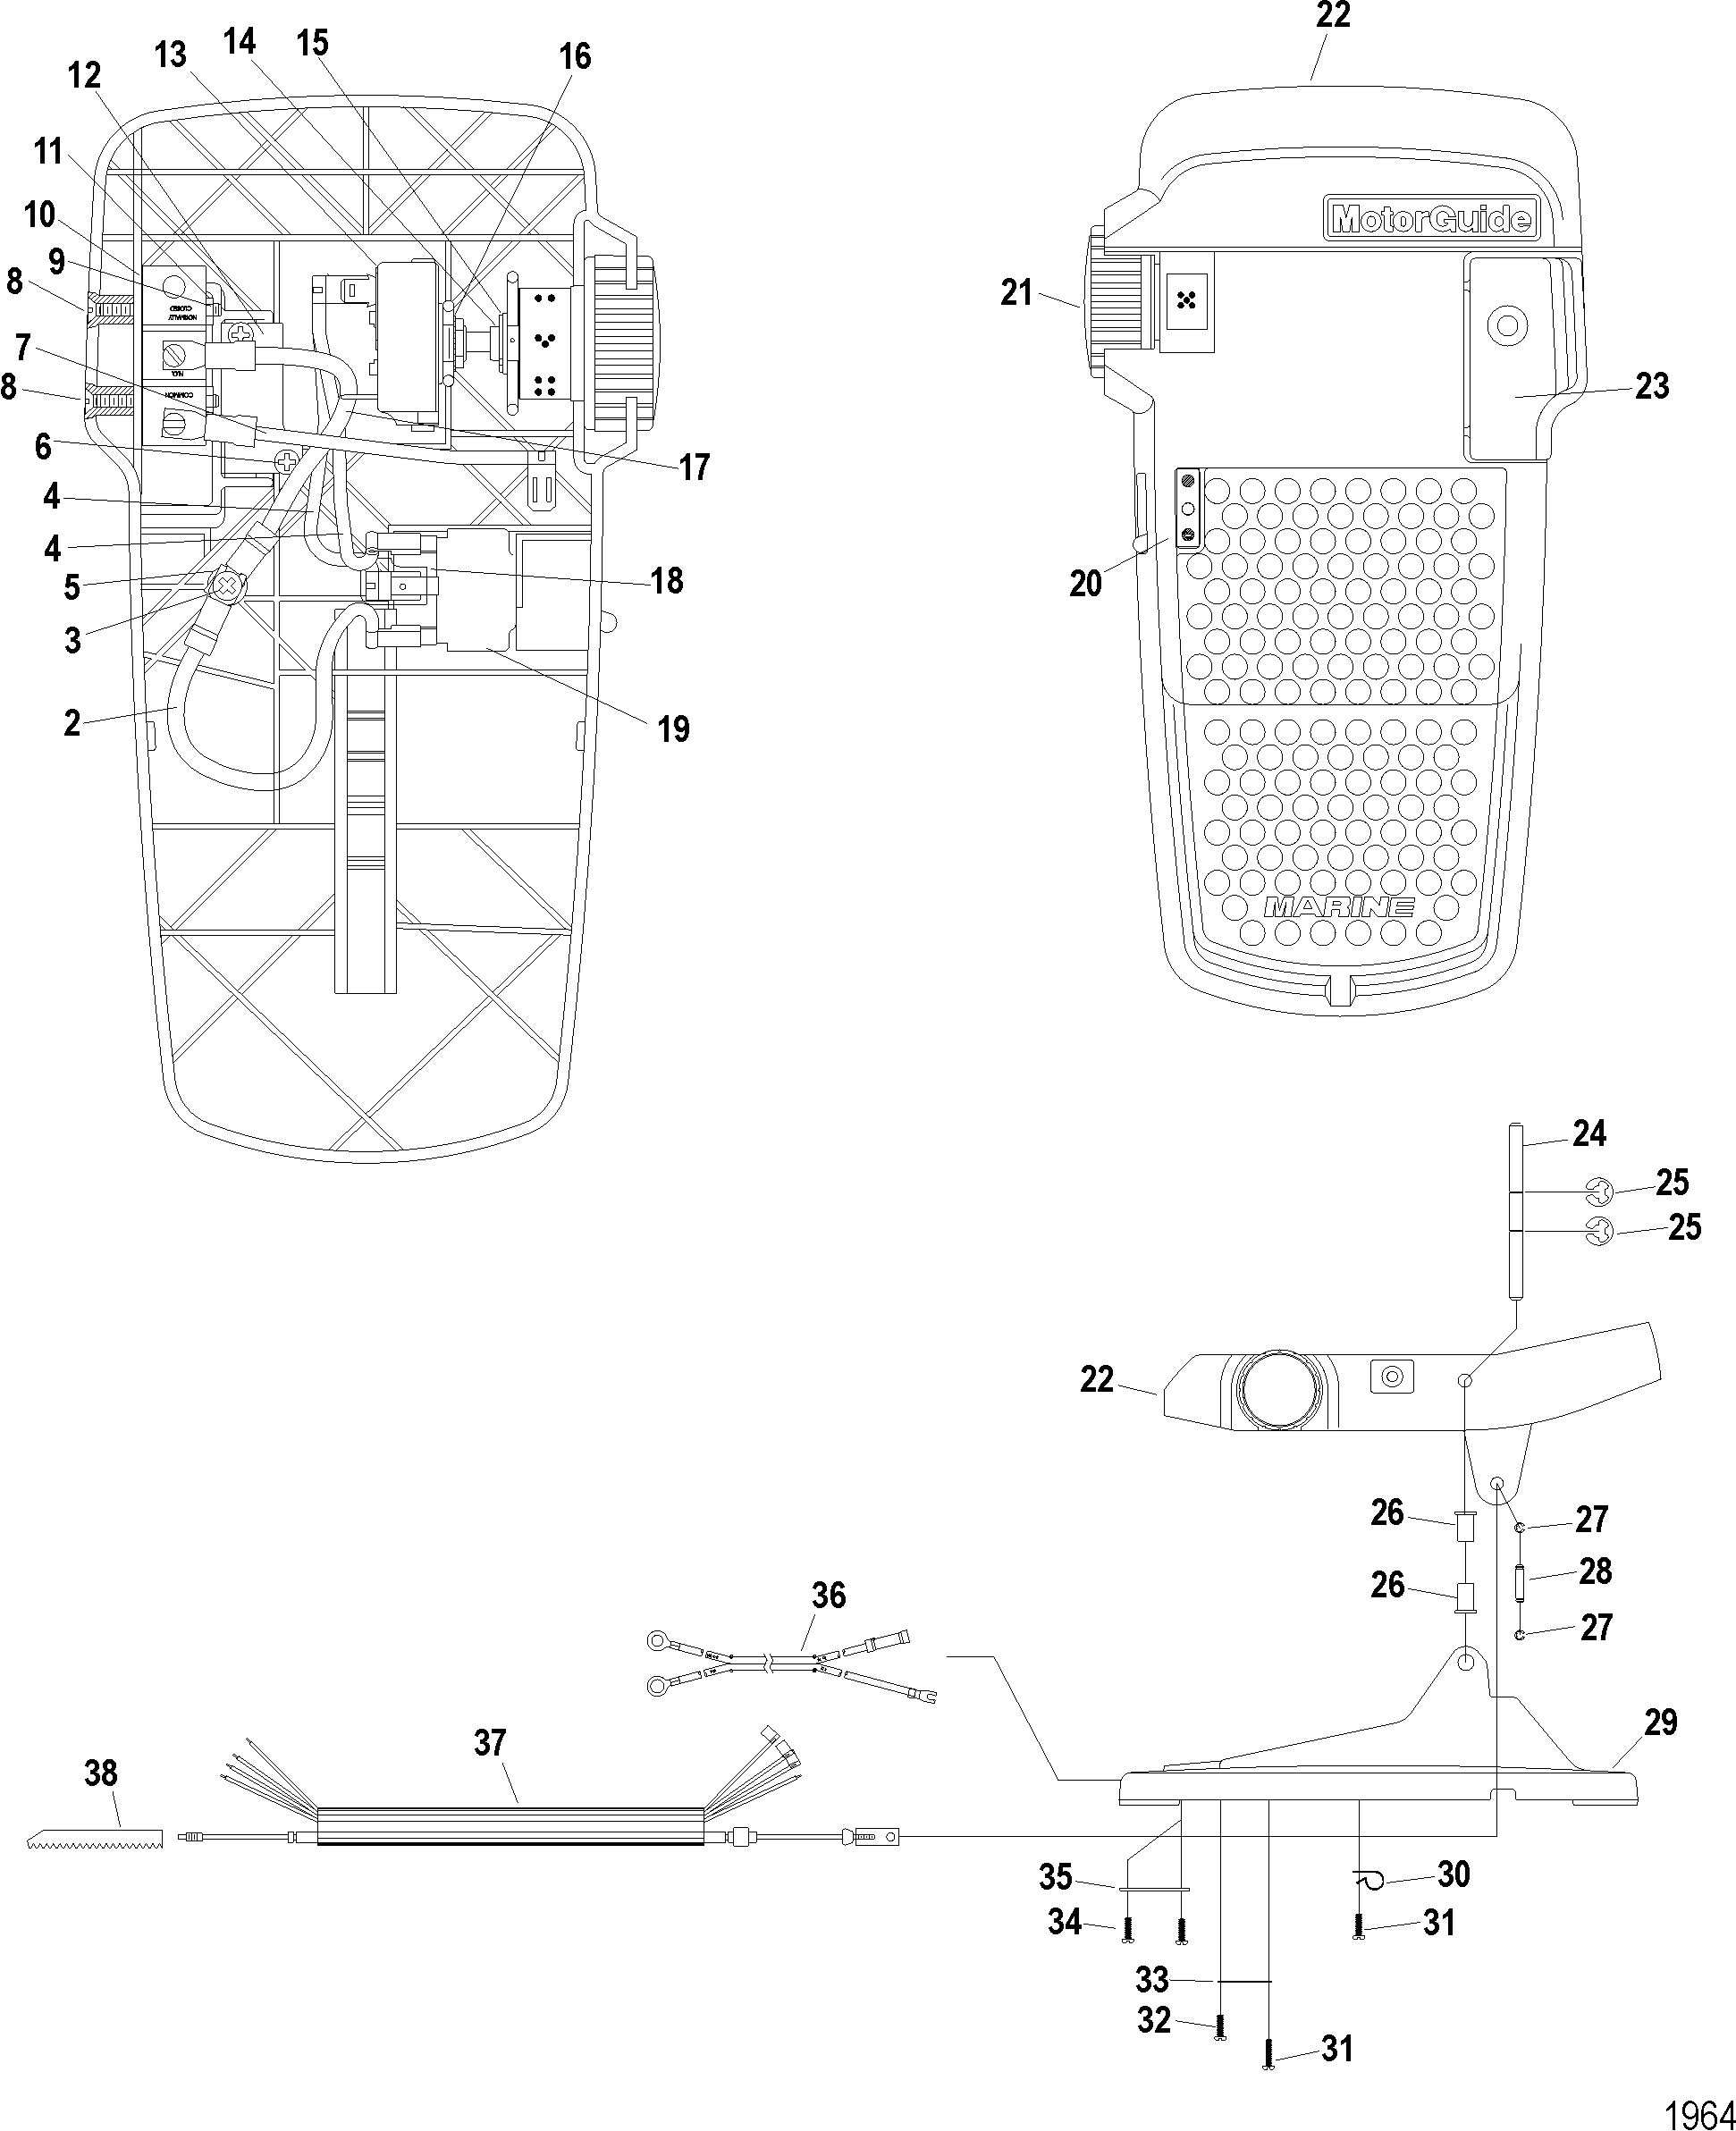 diagram of motorguide great white series trolling motor 12